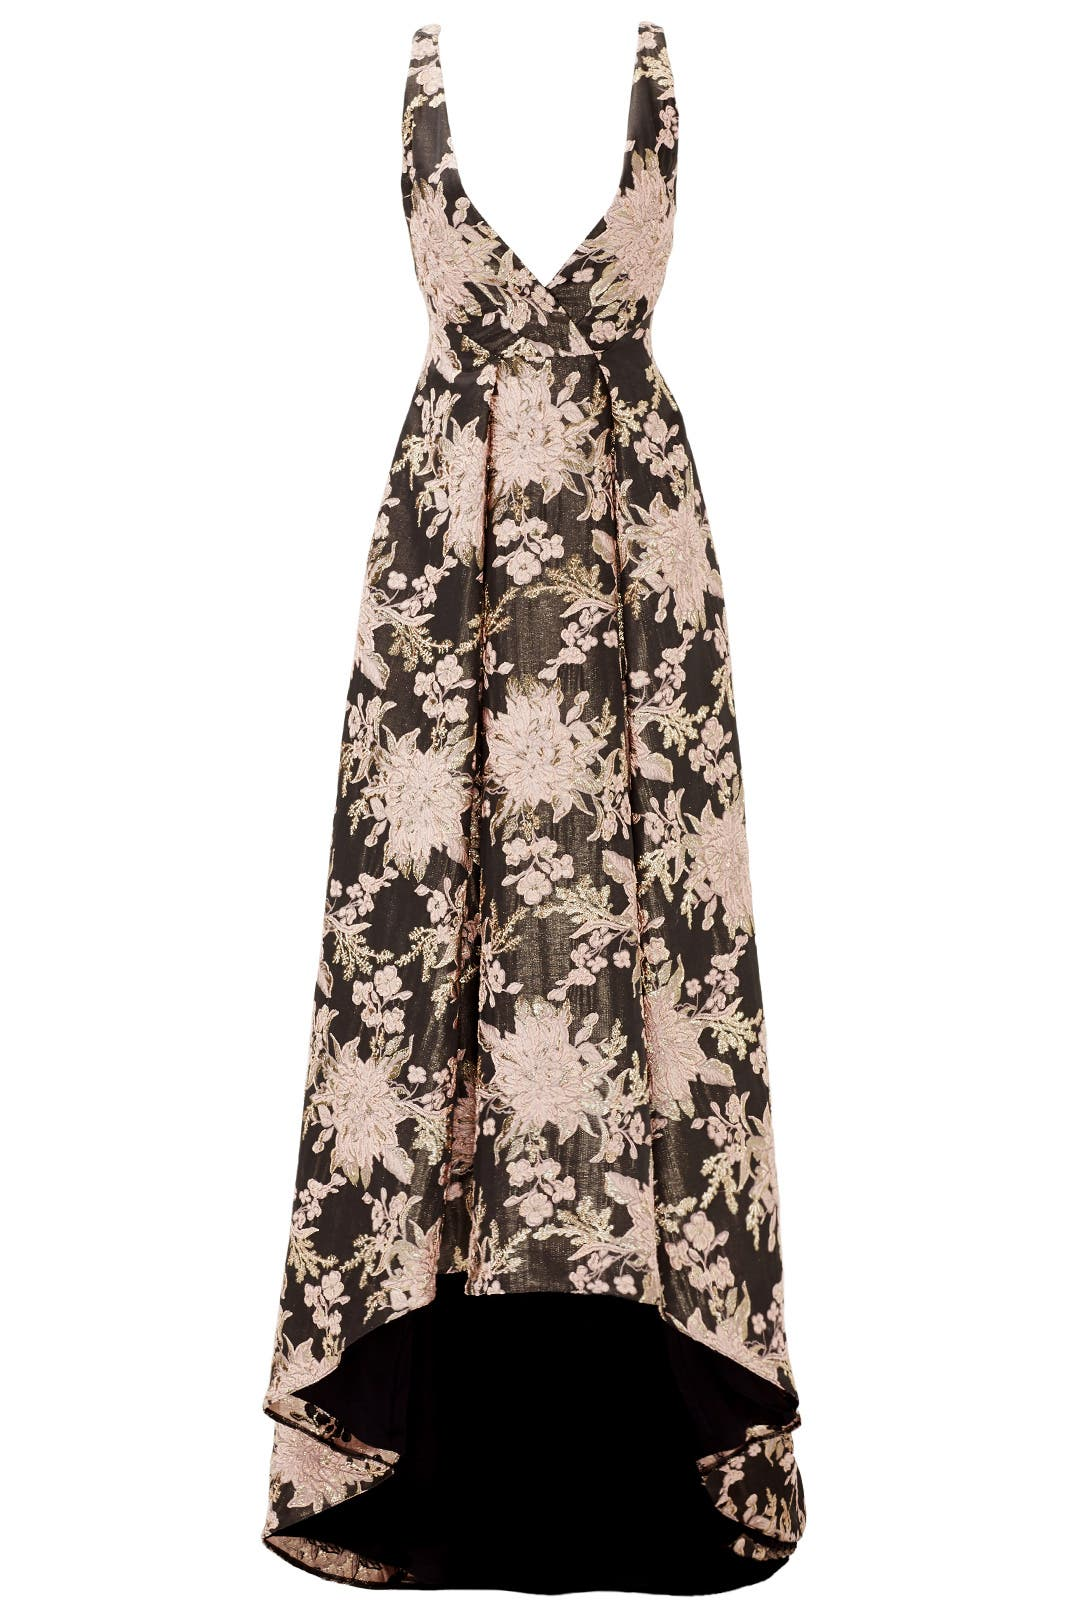 Floral Butterfly Gown by Badgley Mischka for $175 - $185 | Rent the ...